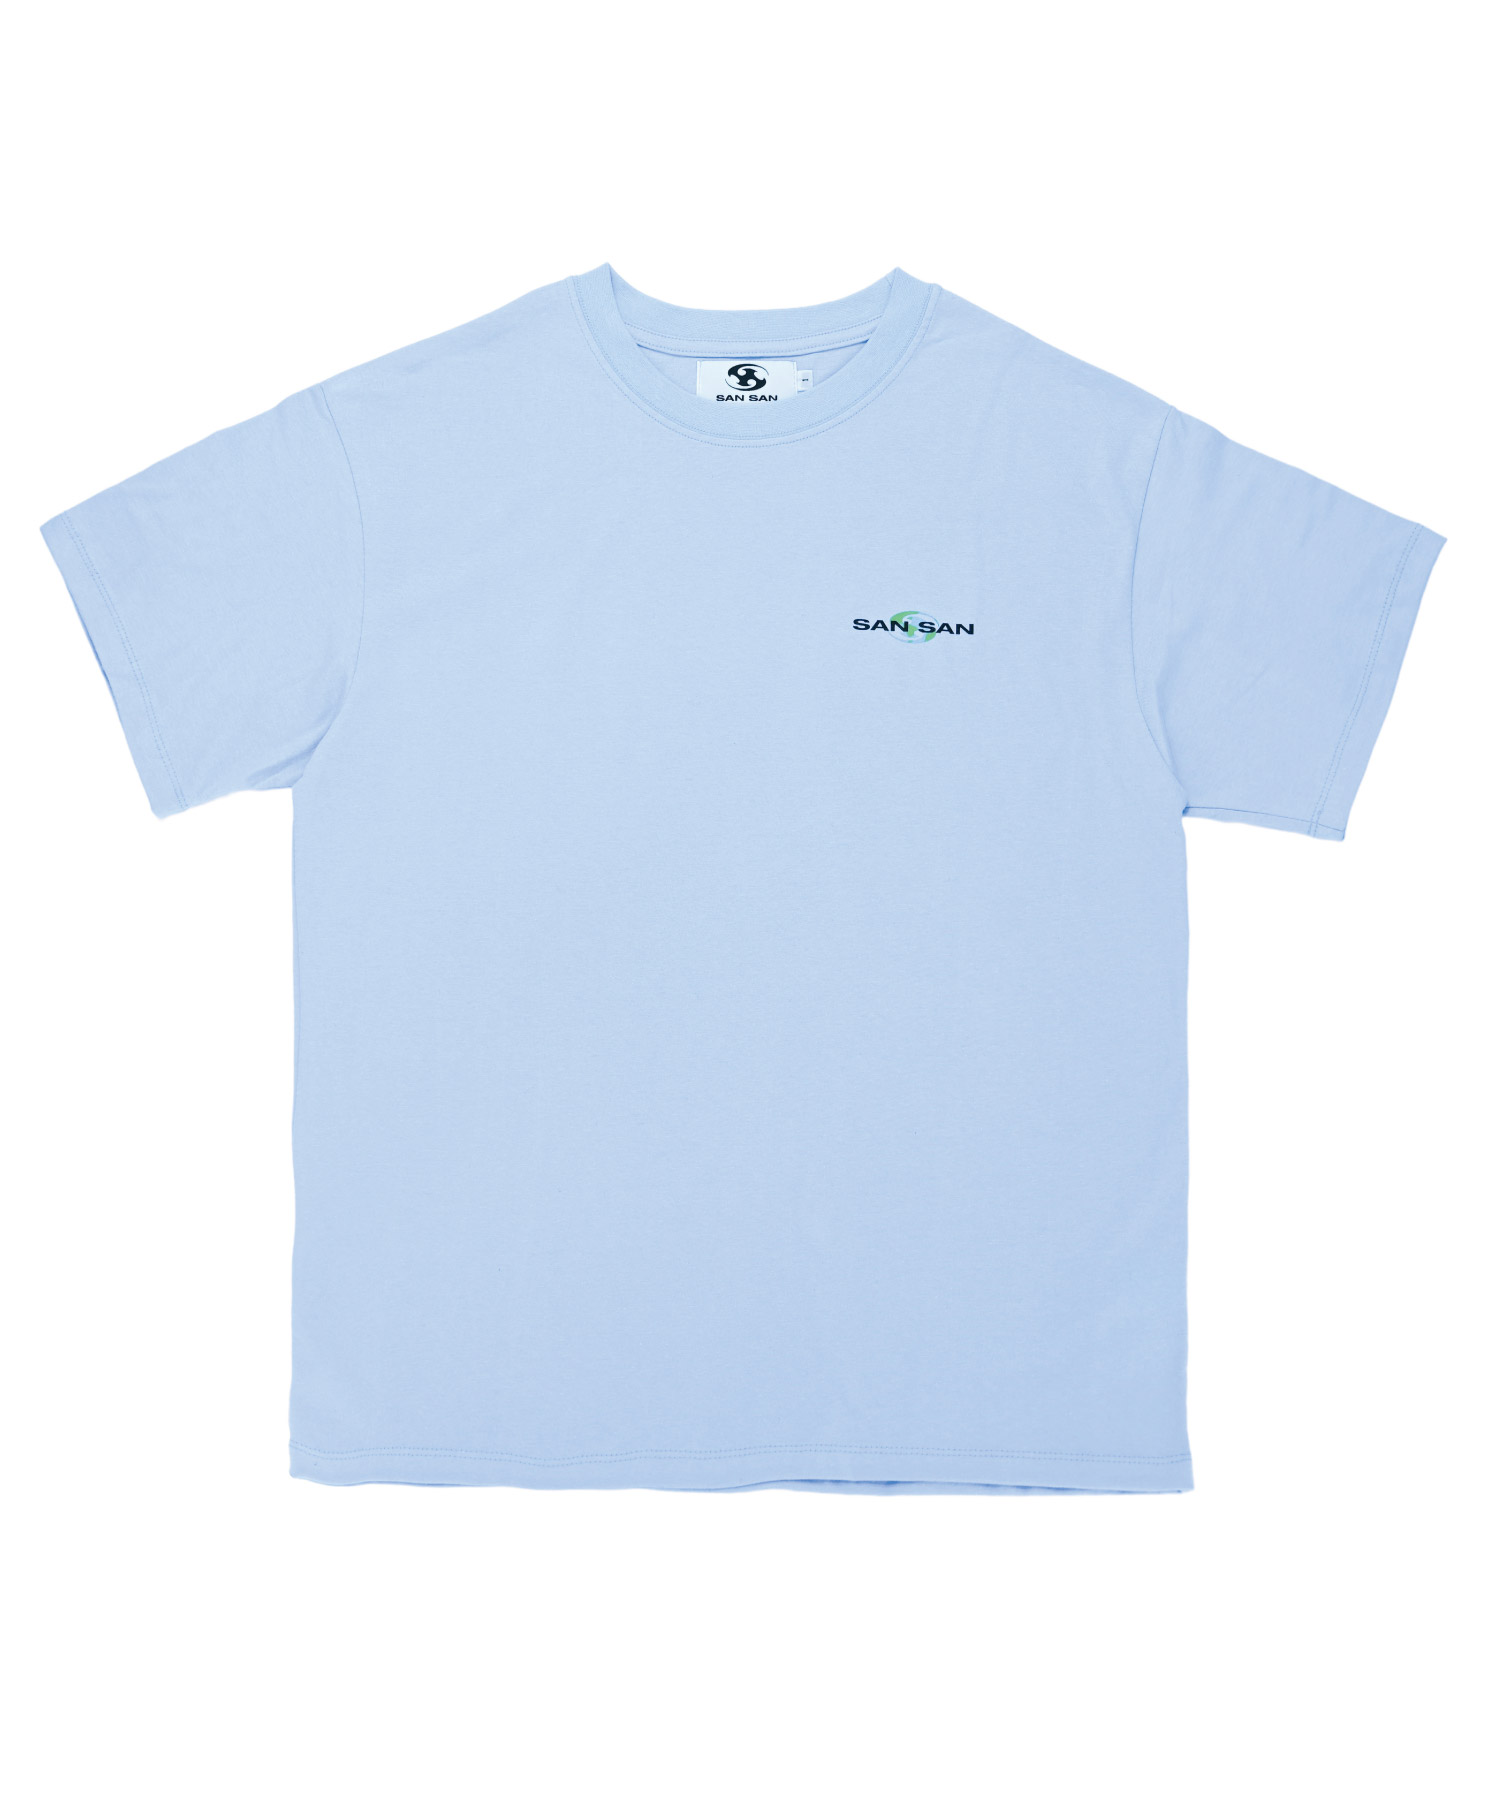 SUPPORT T-SHIRTS SKY BLUE